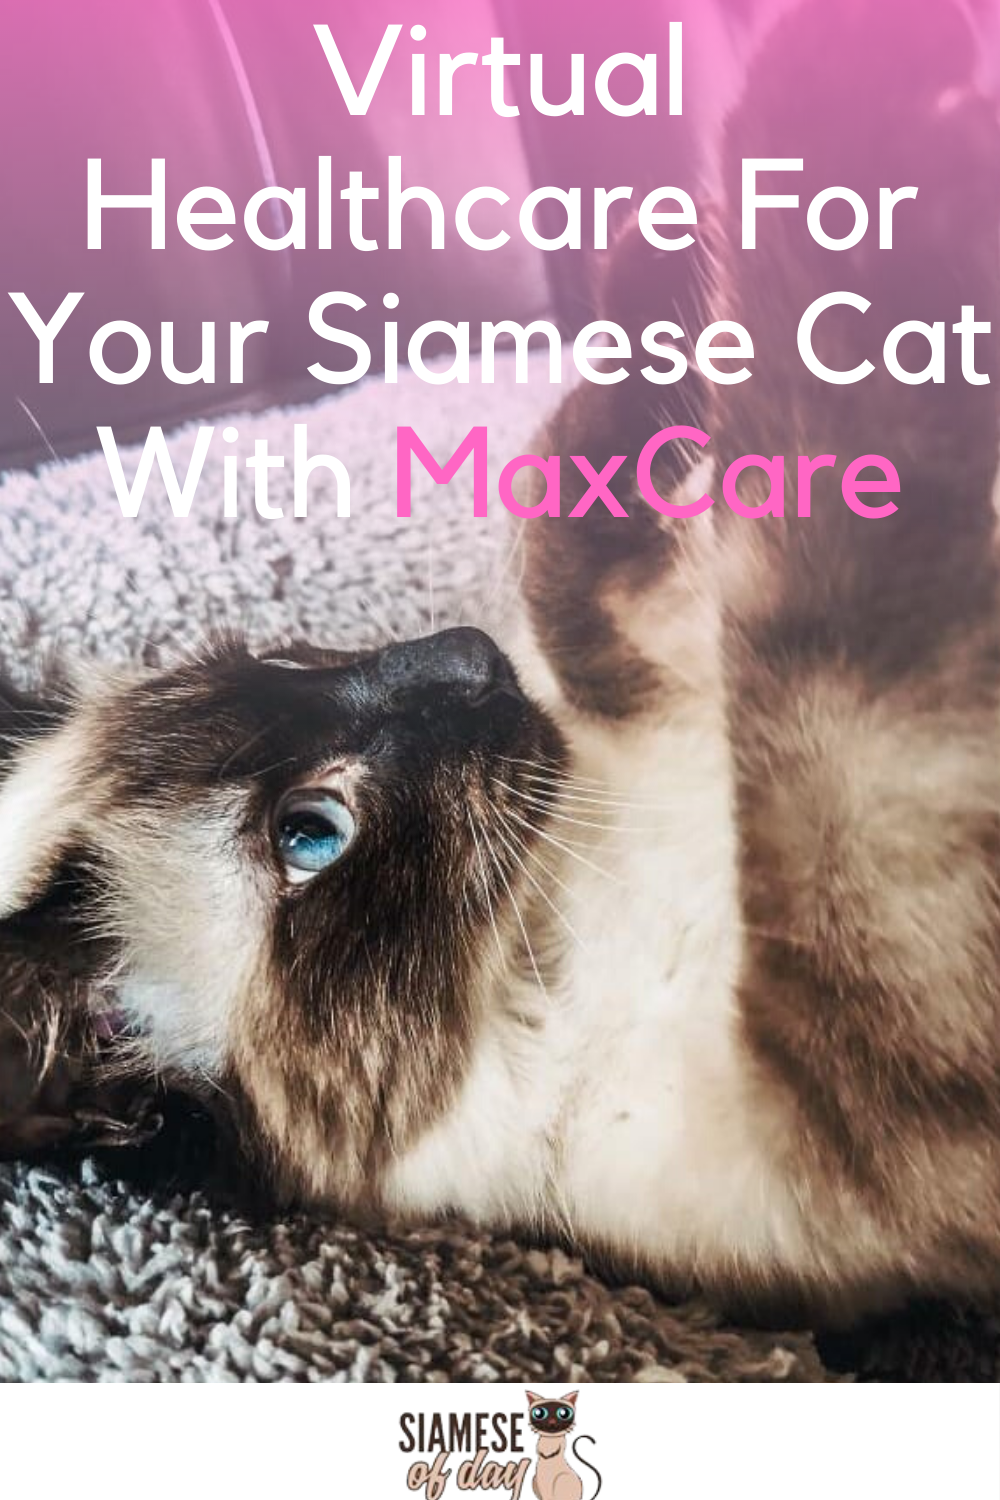 Virtual Healthcare For Your Siamese Cat With MaxCare